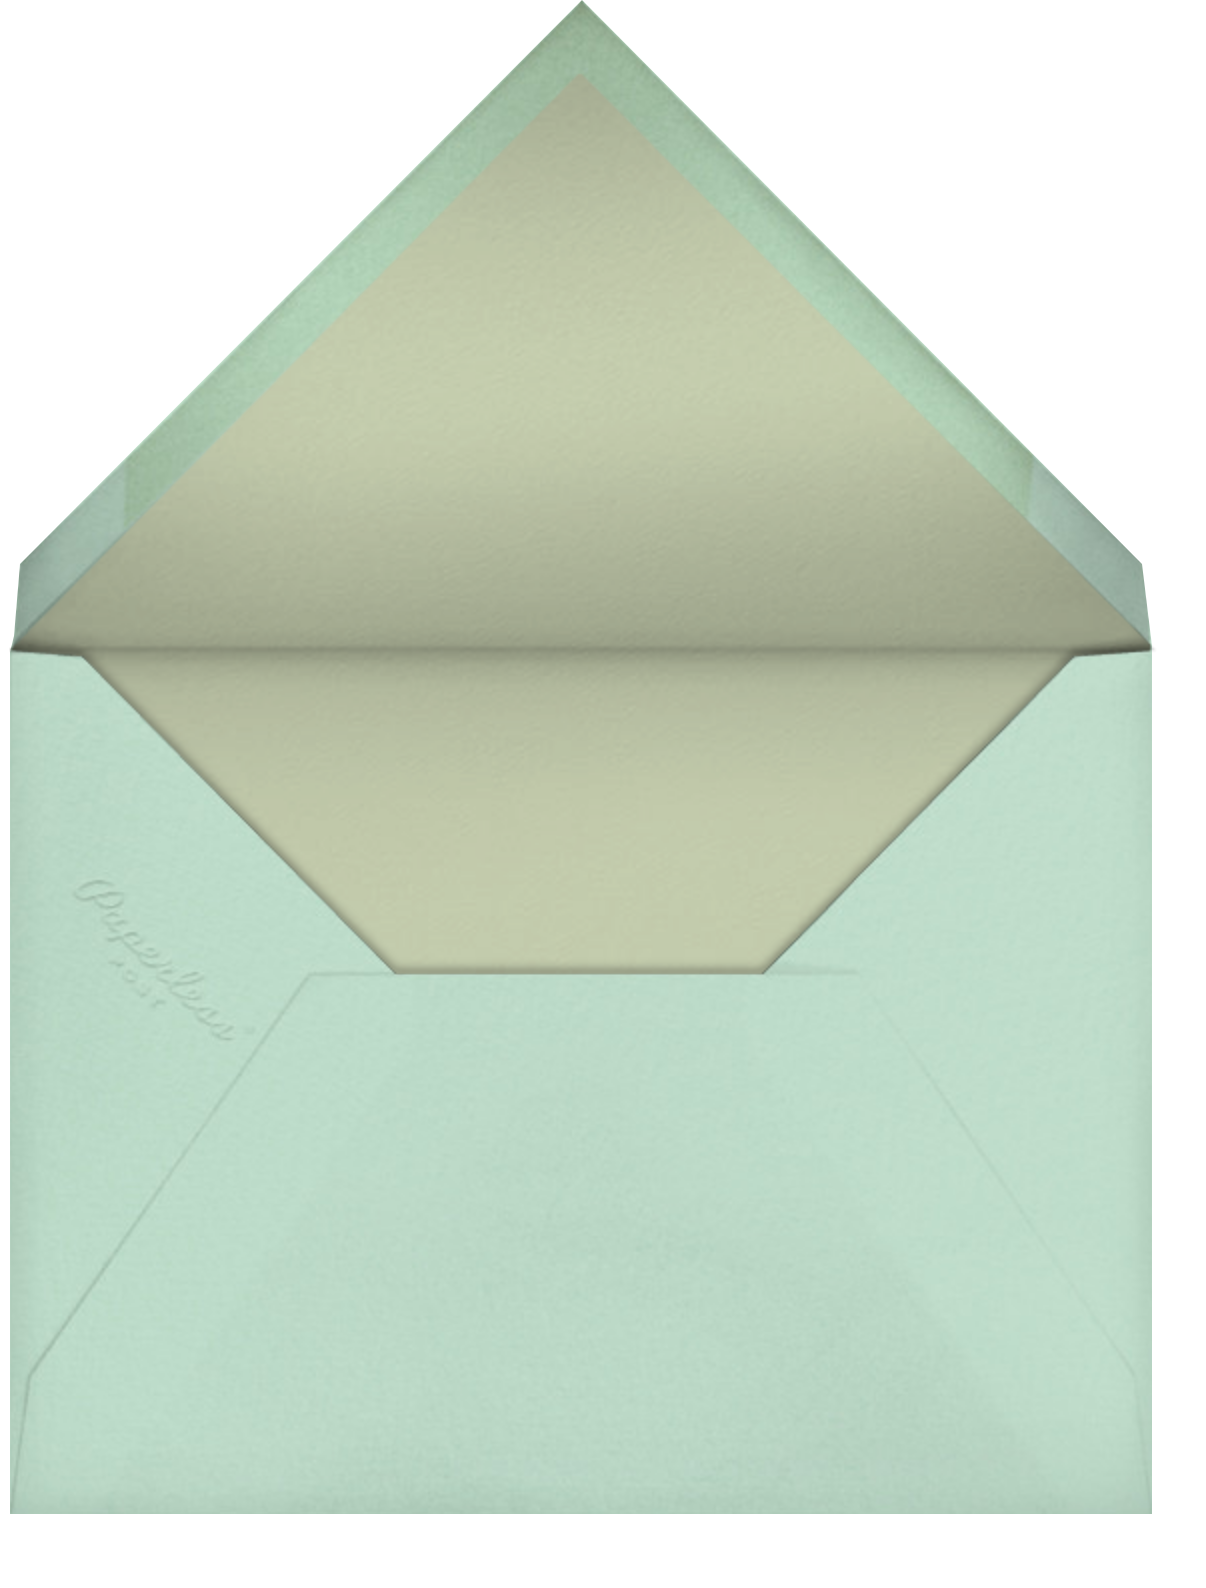 Script Heart - White/Sage - Paperless Post - Party save the dates - envelope back